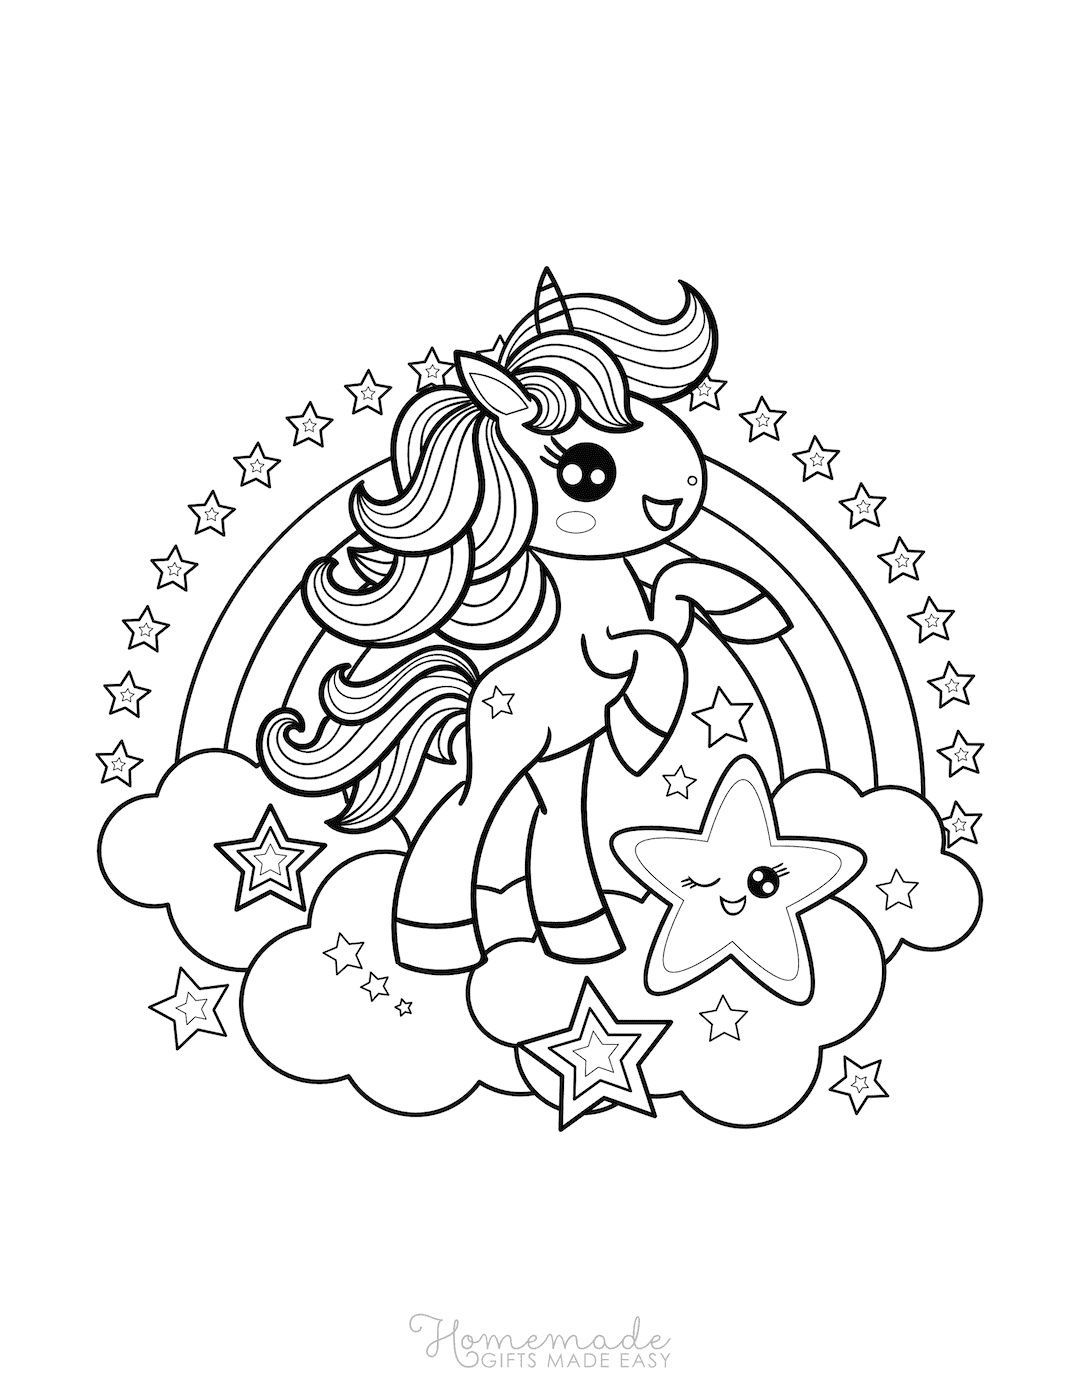 75 Magical Unicorn Coloring Pages For Kids Adults Free Printables Unicorn Coloring Pages Love Coloring Pages Coloring Pages